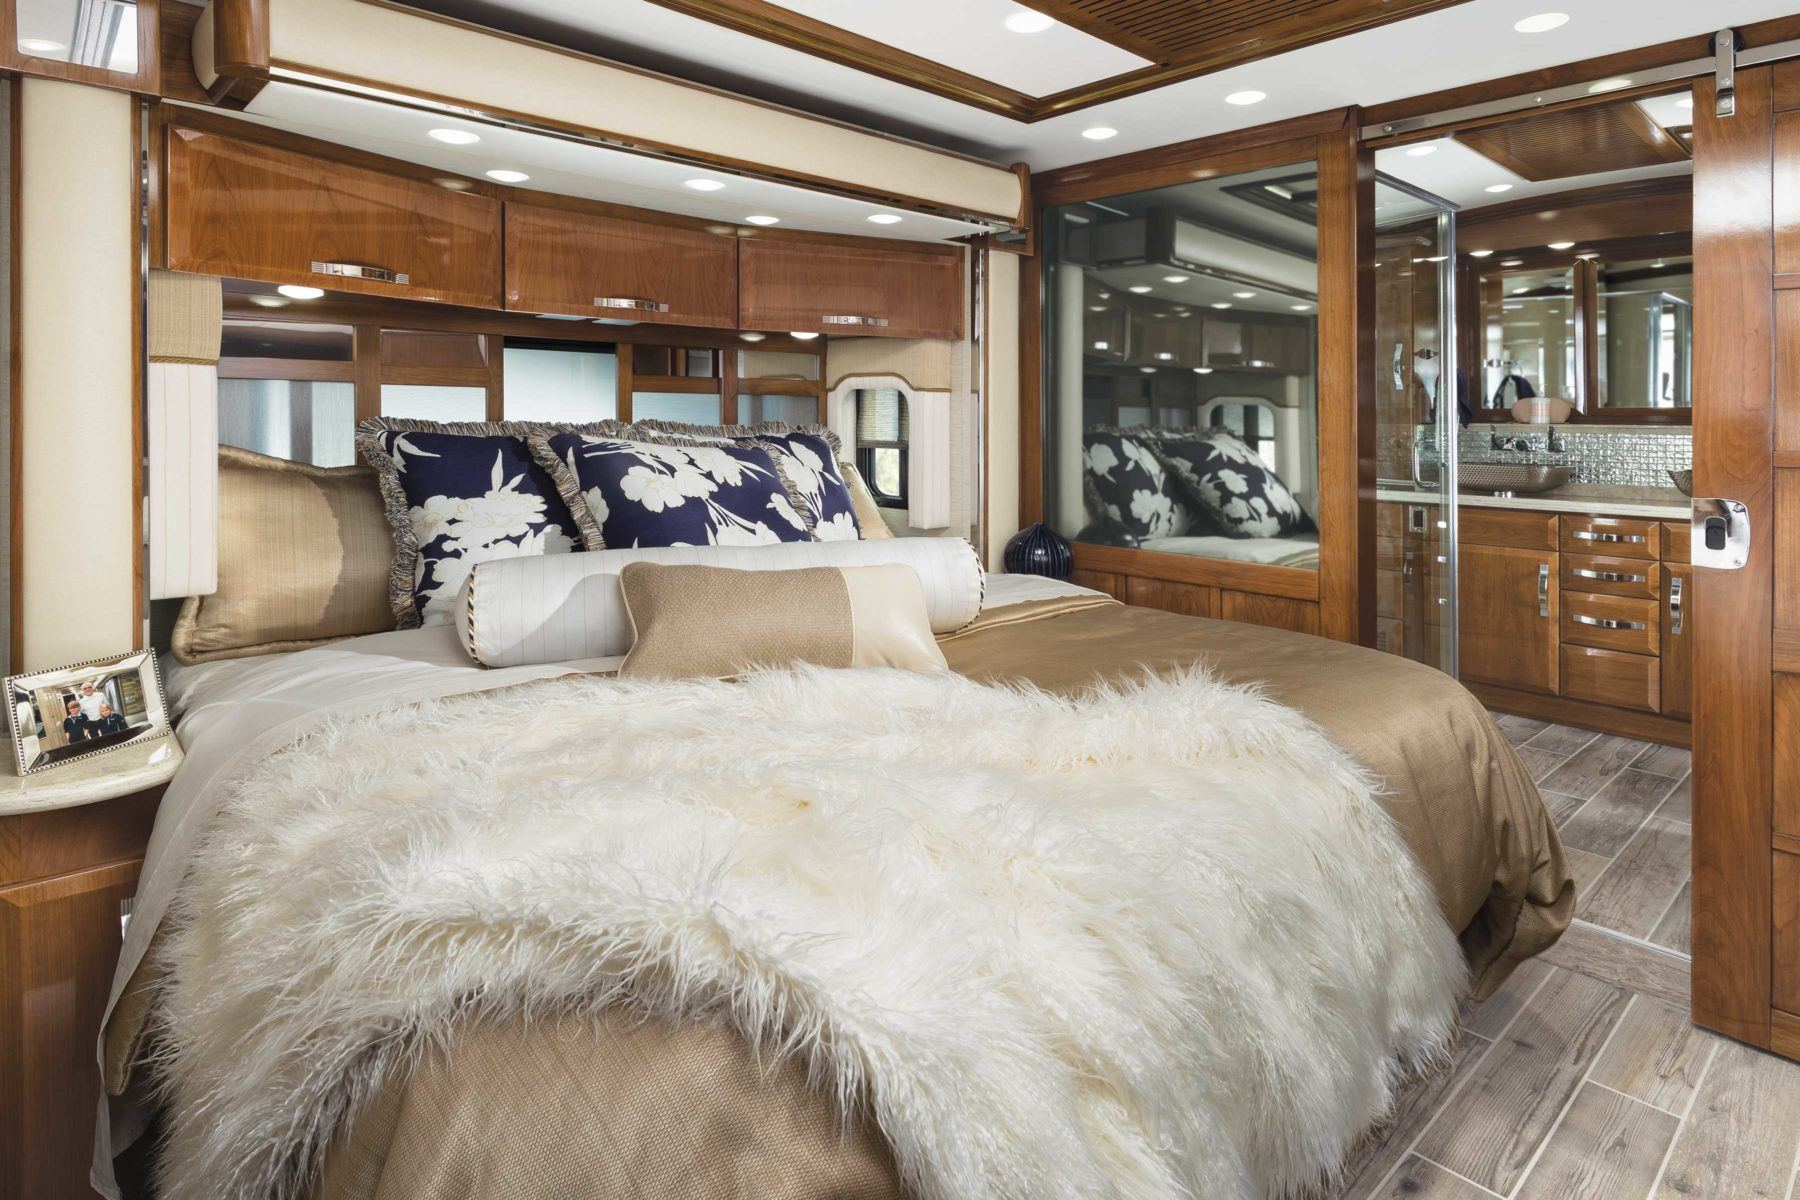 Take a Look Inside These $1 Million Luxury RVs That Are Probably